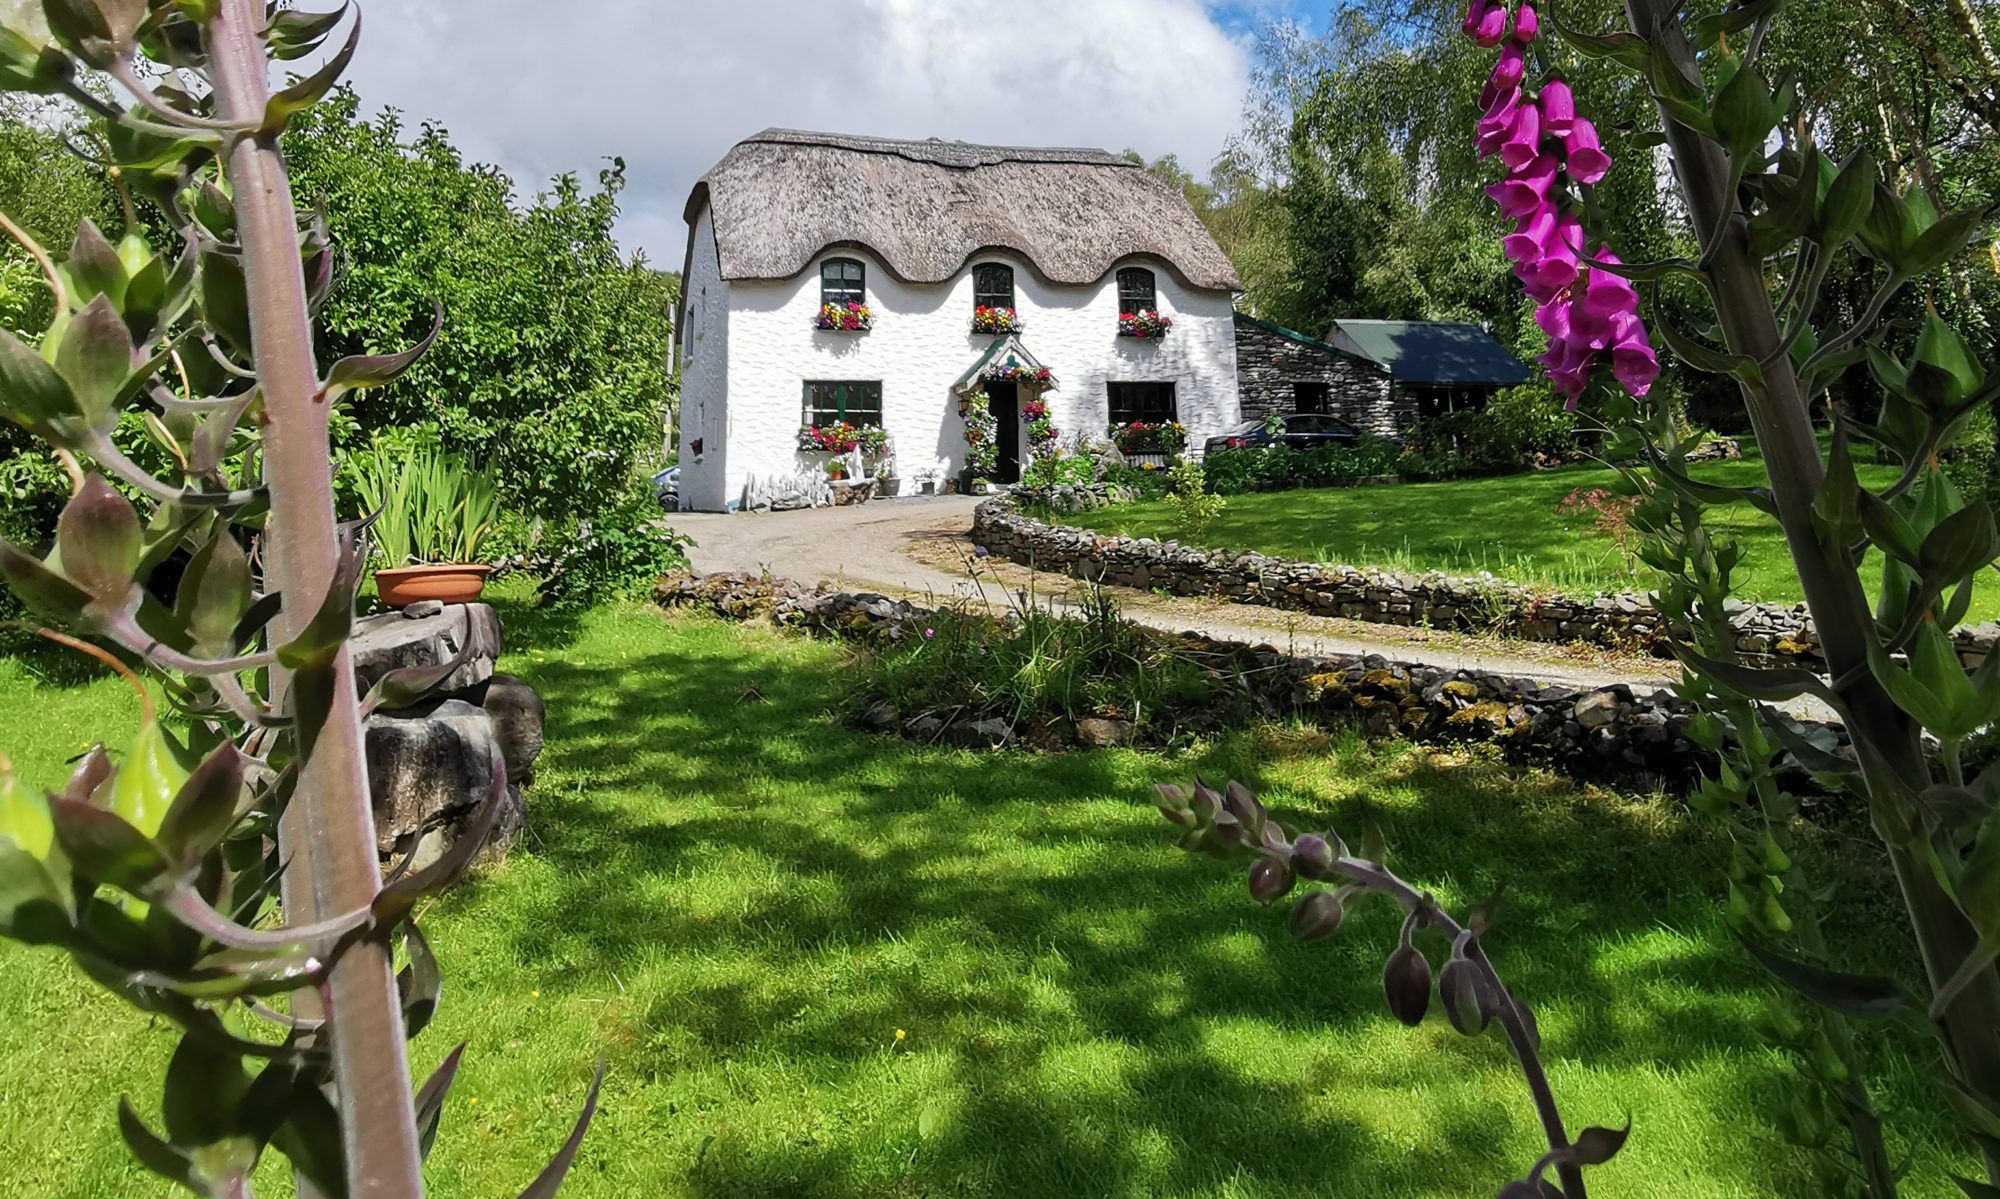 Lissyclearig Thatched Cottage B&B - Kenmare, Co. Kerry, Ireland